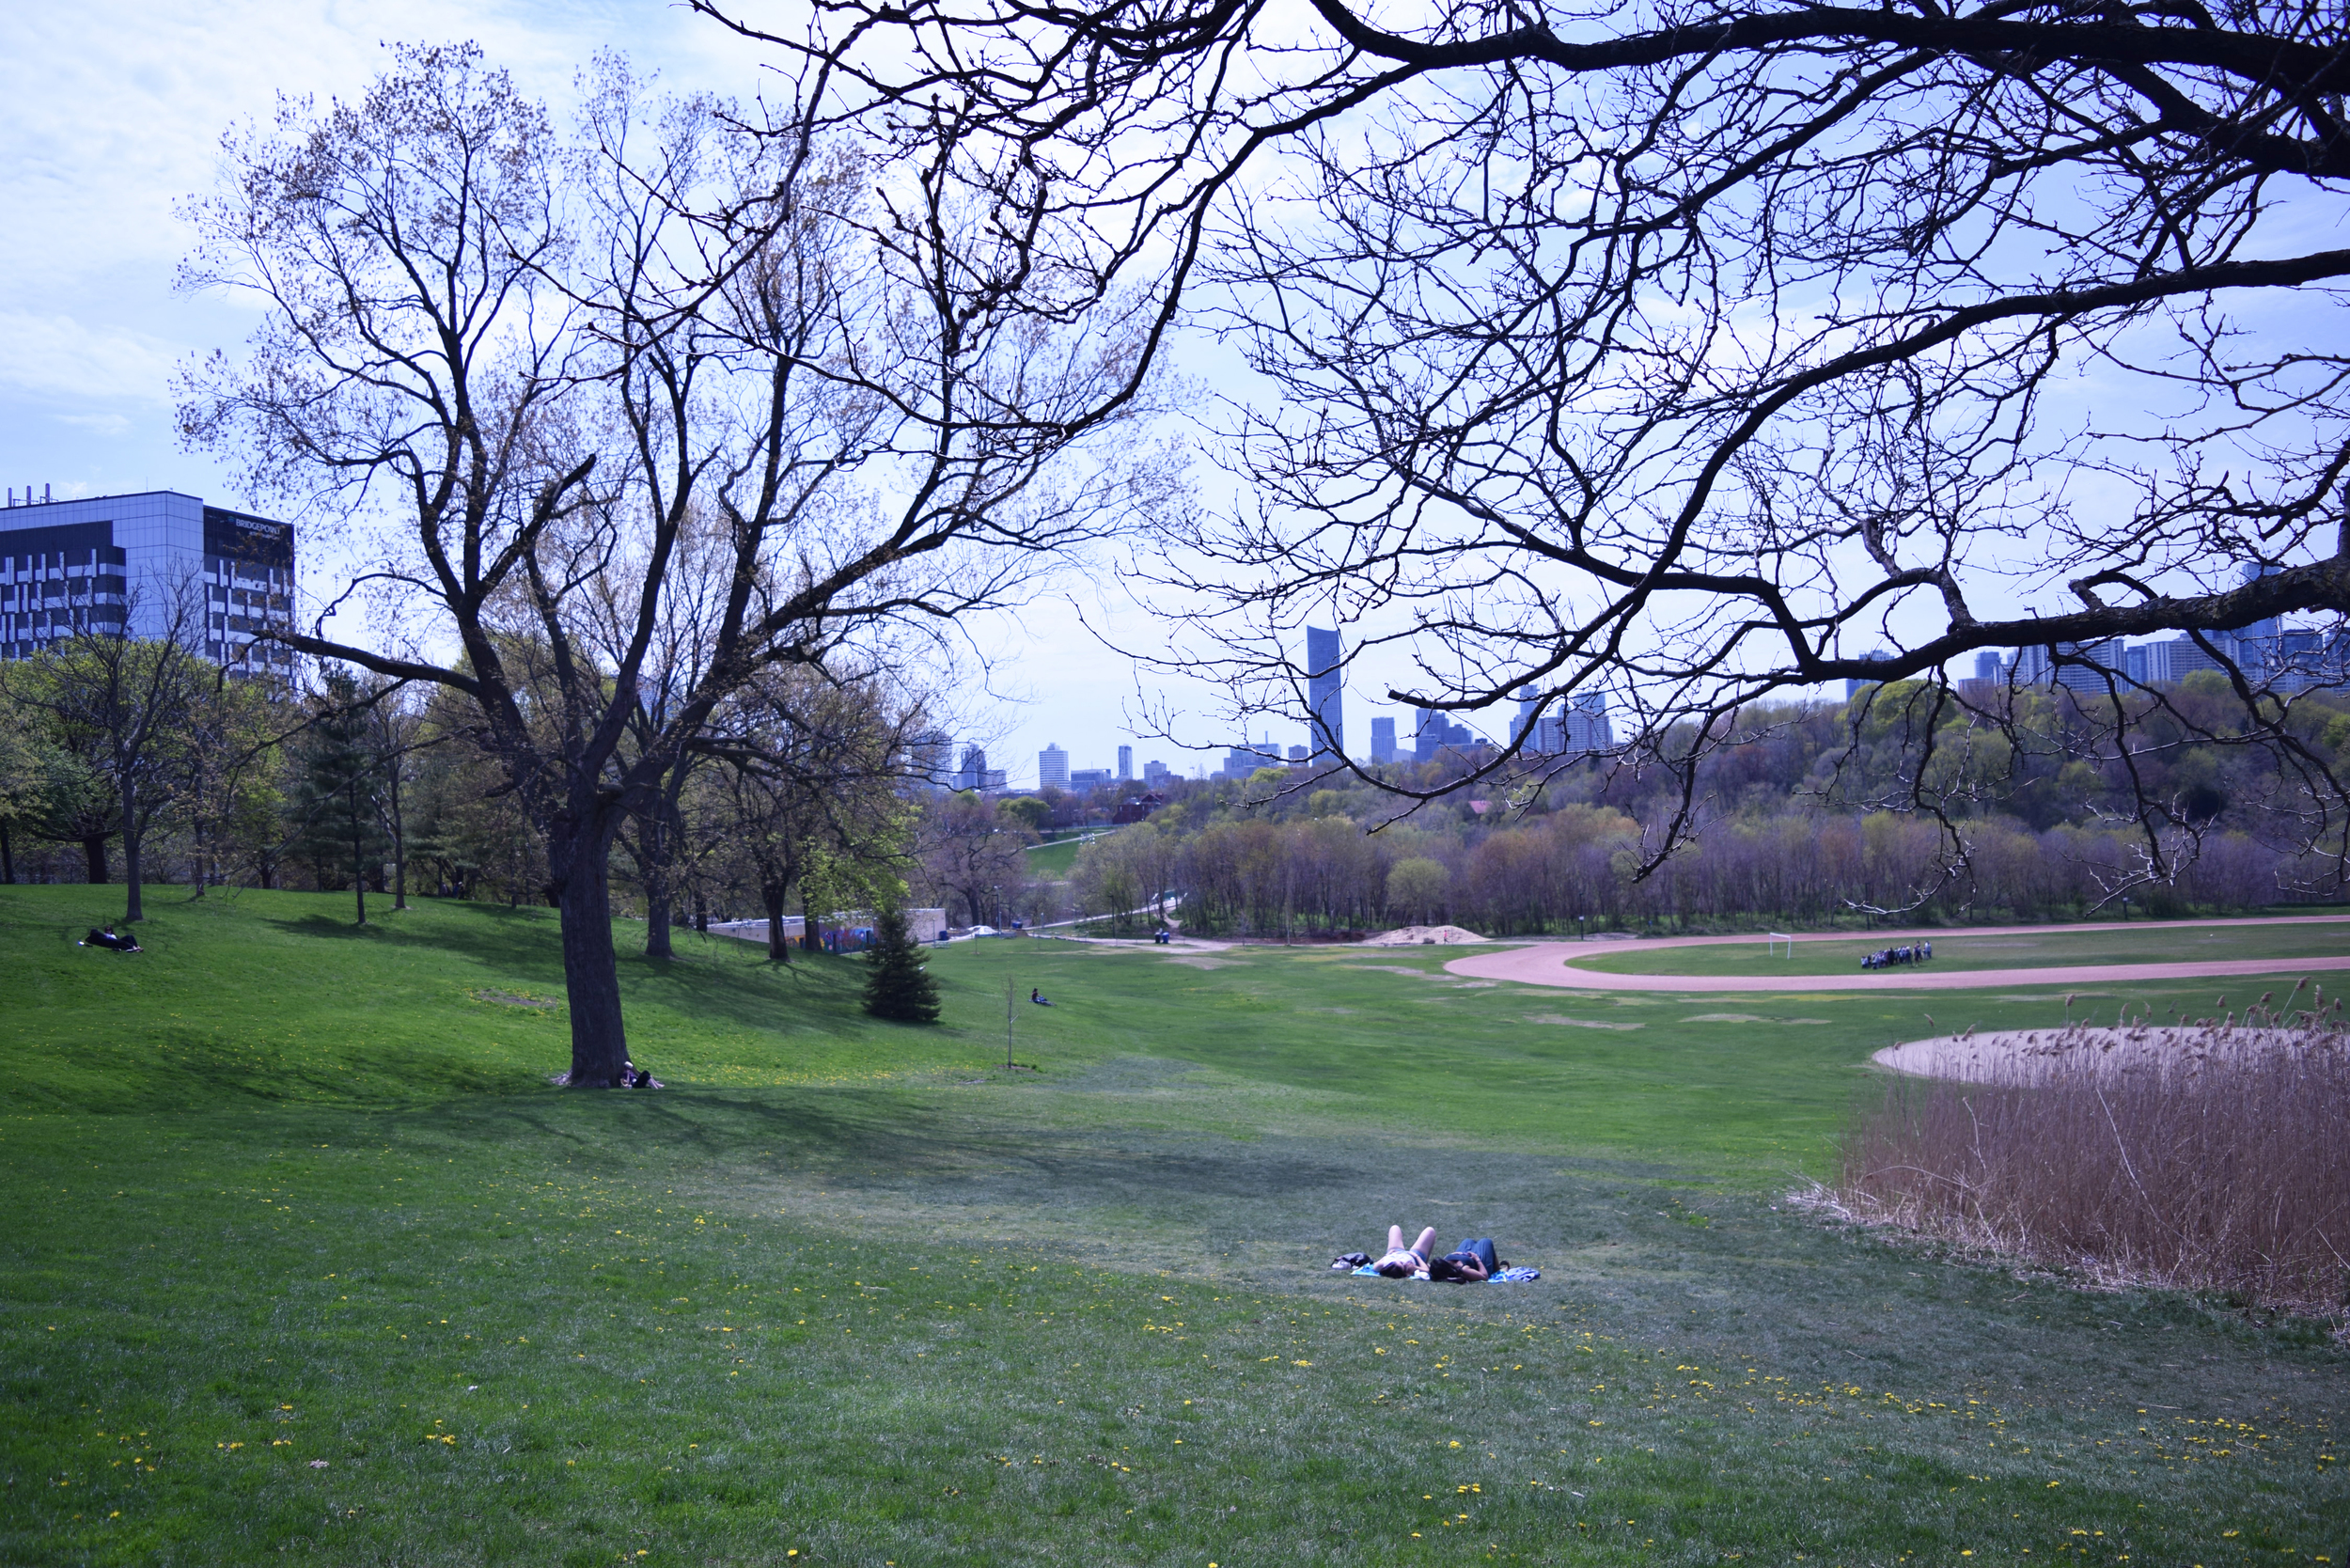 Riverdale Park East with Riverdale Park West Beyond (photograph by John Severino)